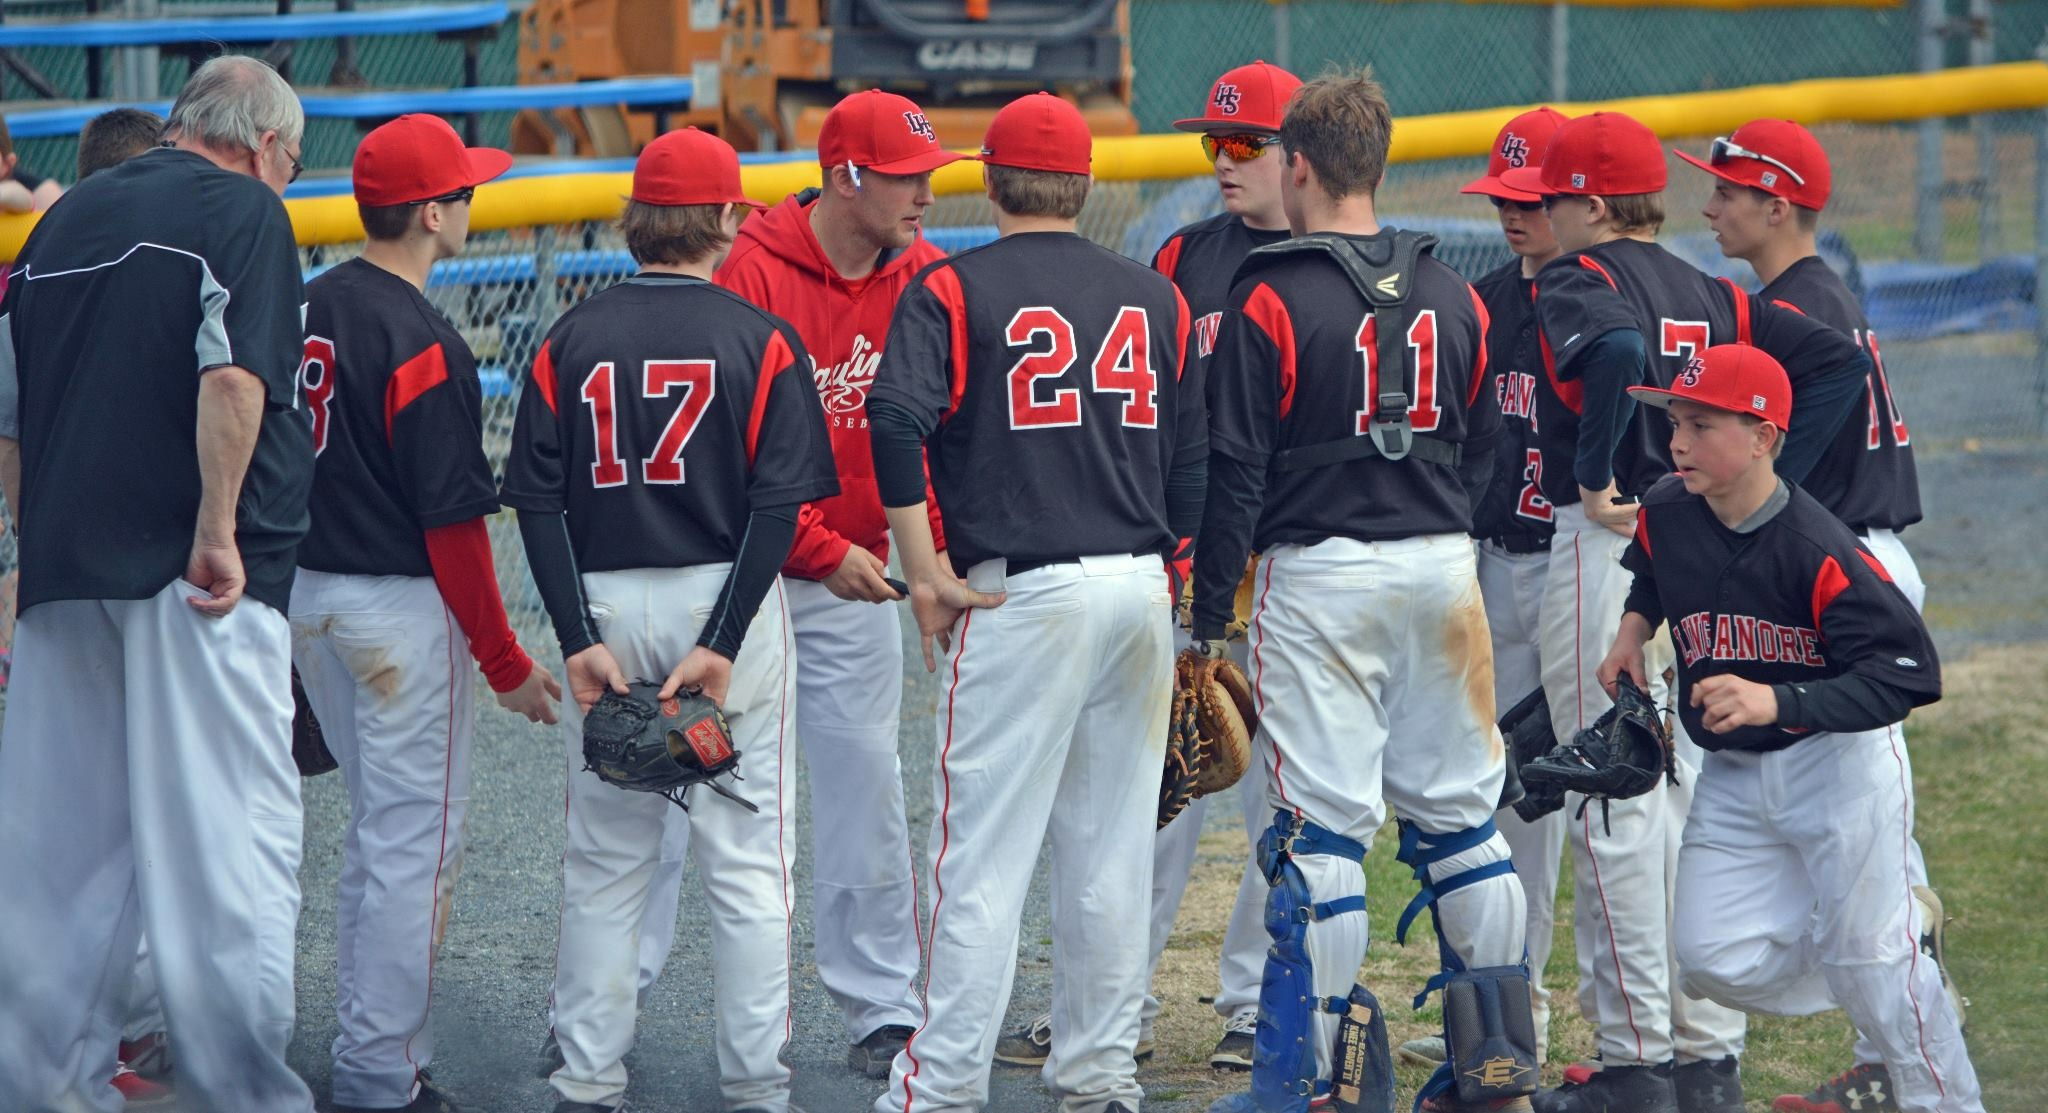 The Lancer JV baseball team huddles together during Tuesday's game against Walkersville.